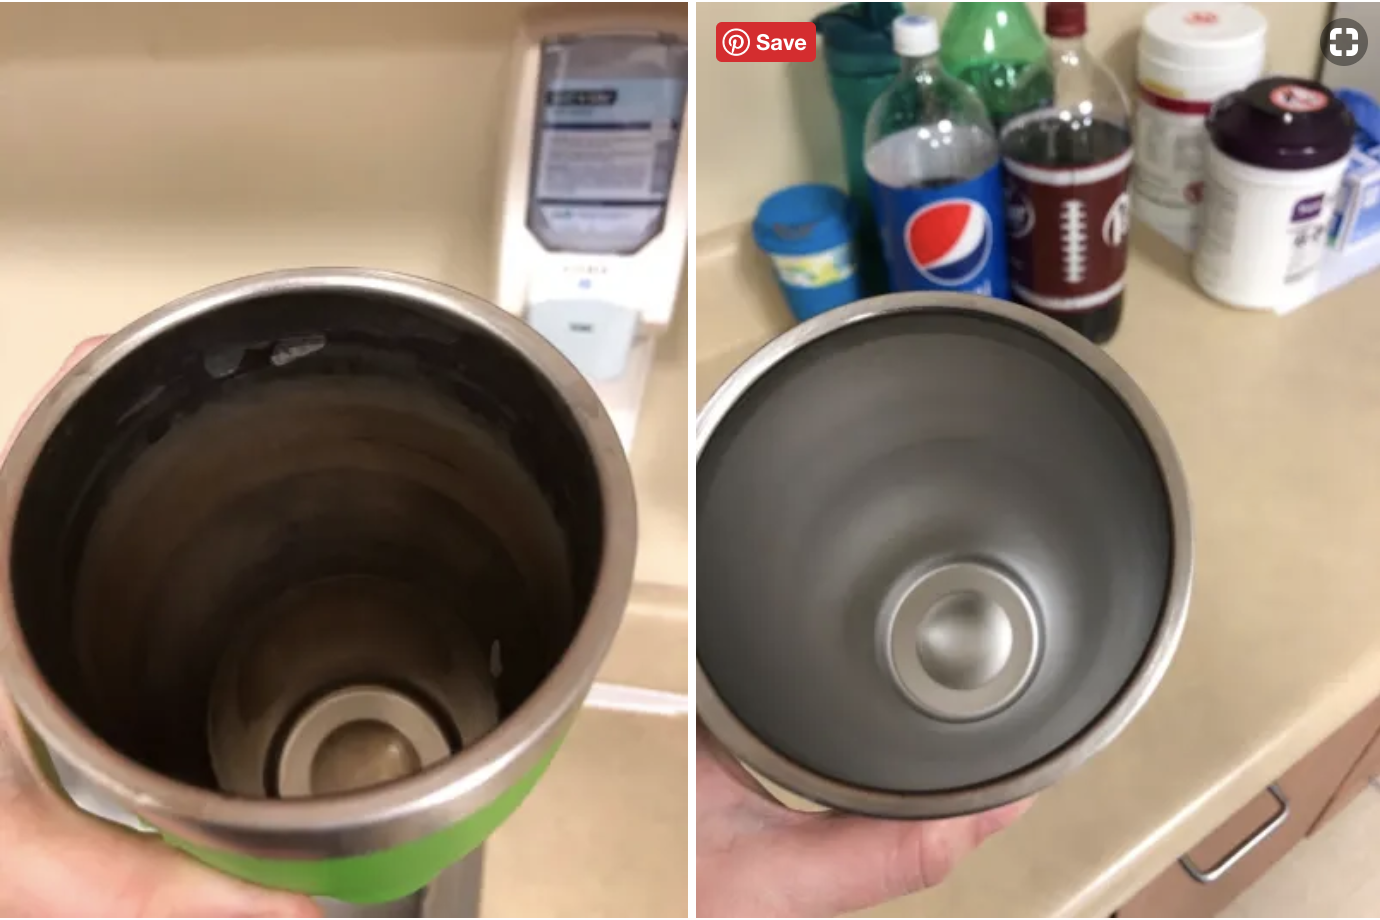 A stainless steel tumbler with coffee stains on the left, and the same cup totally clean on the right